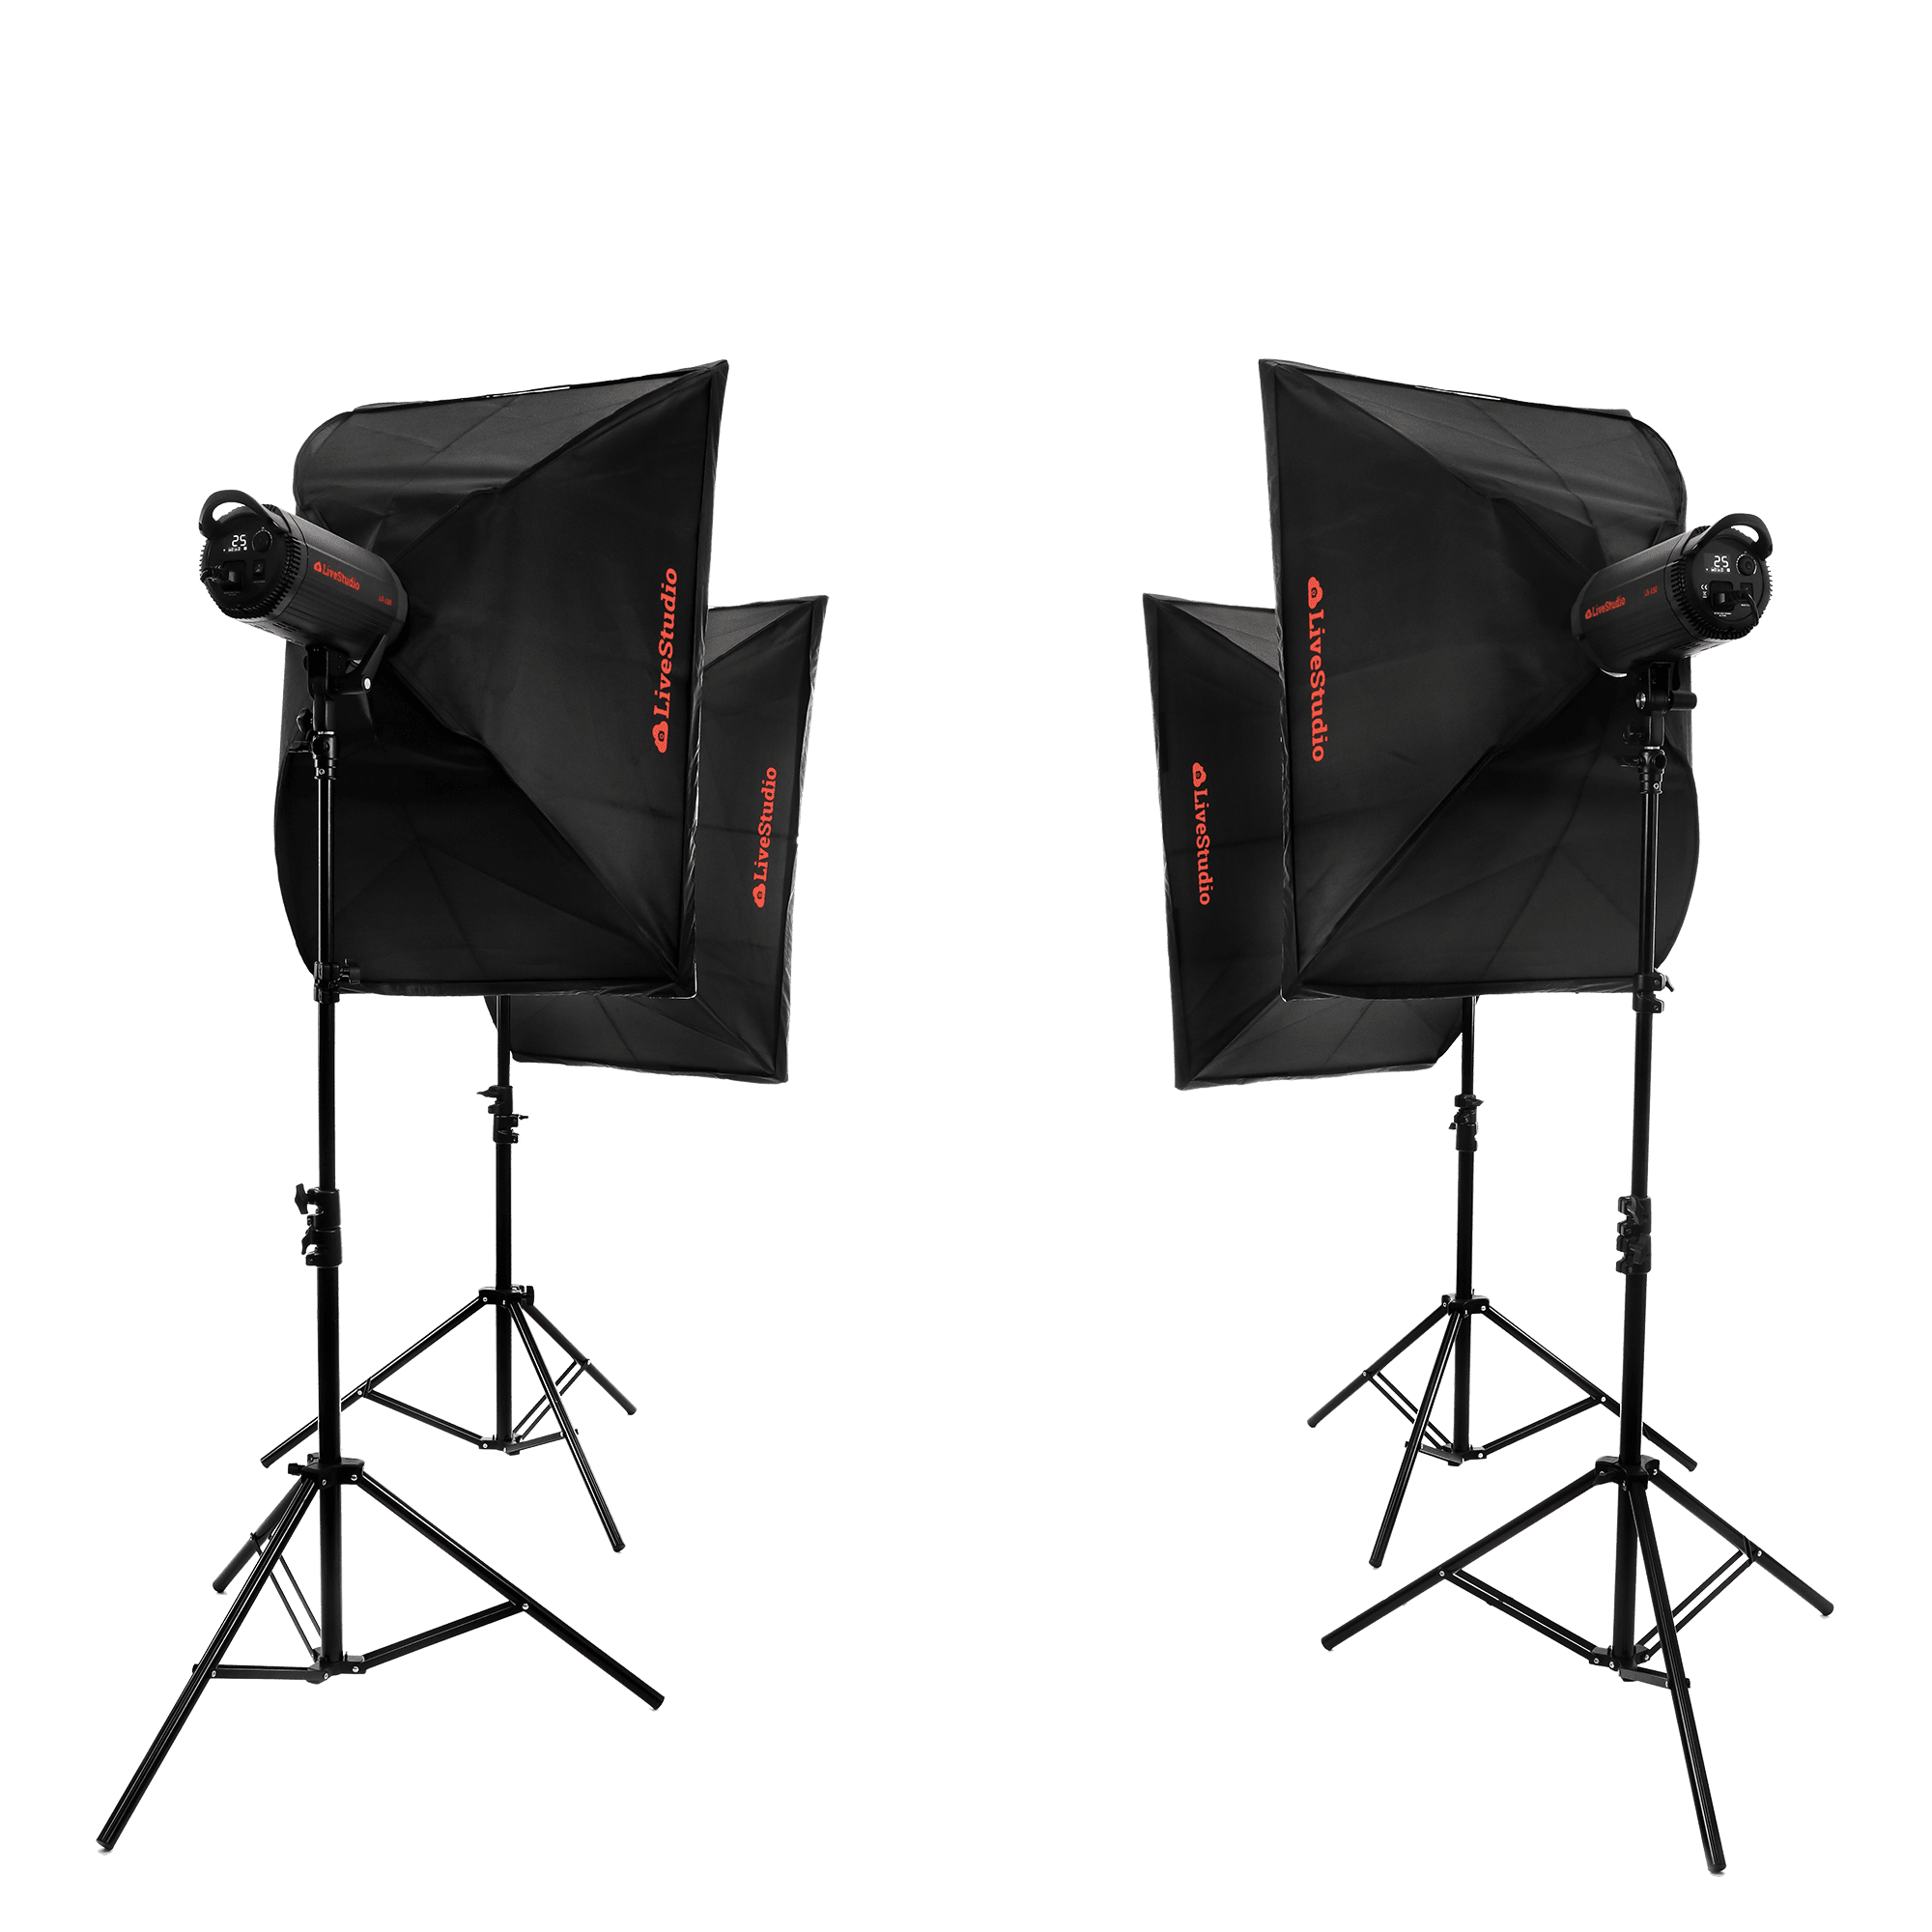 Ortery LiveStudio - 4 light product photography kit and software